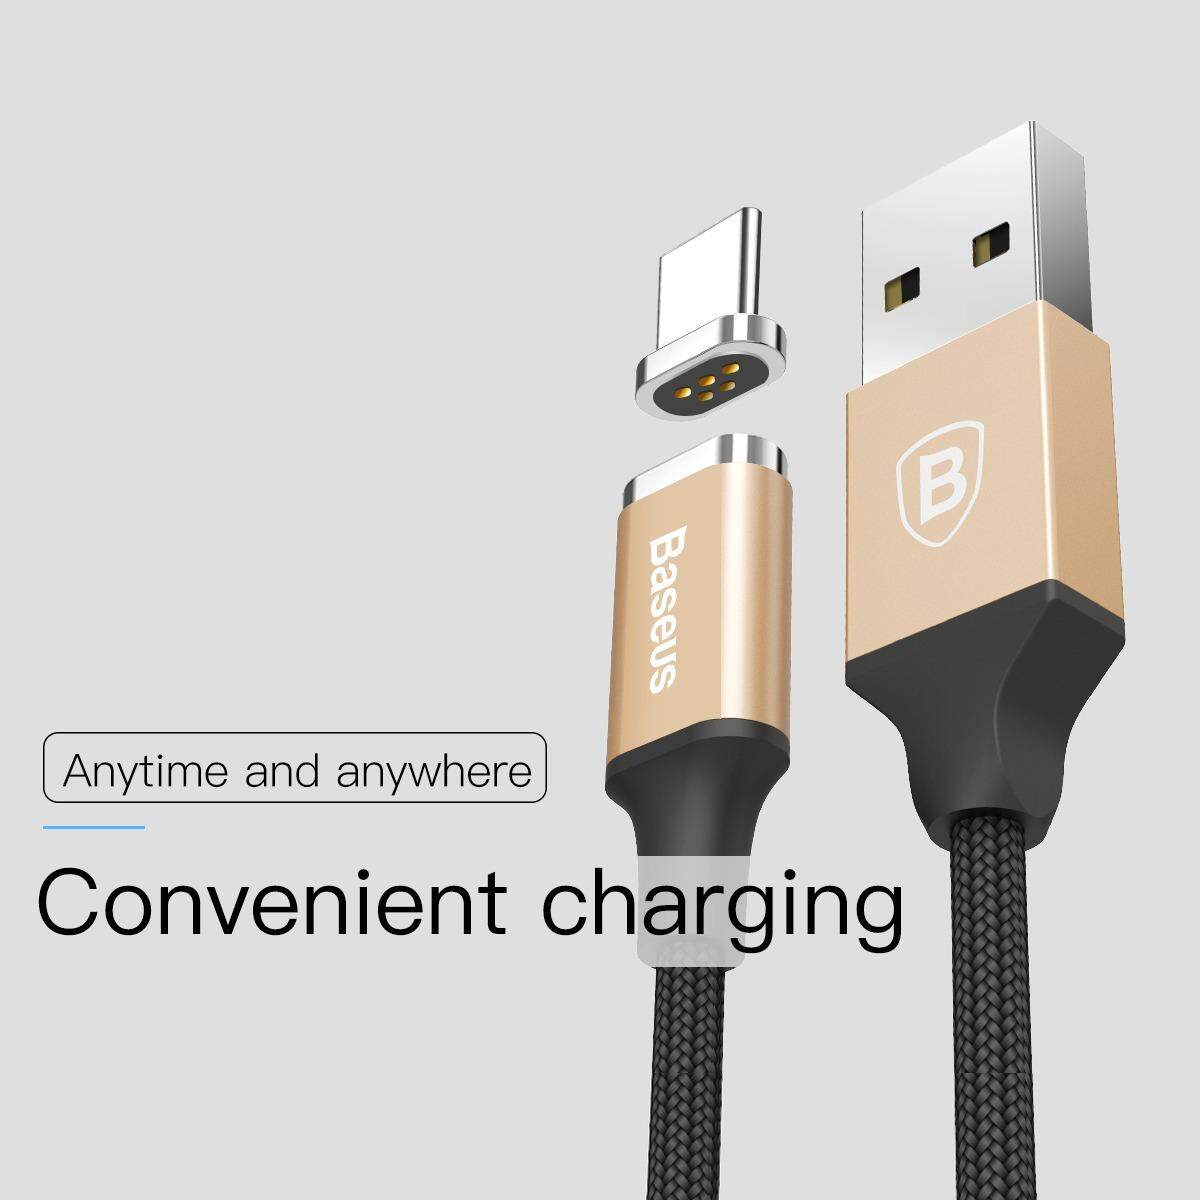 ซื้อ Baseus Magnetic Typec Usb Cable Adapter สายชาร์จ สายชาร์จแบต Charging Cable Mini Magnet Charger For Huawei P9 P9Plus P10 Plus Mate9 Pro Samsung S8 Plus Note8 C9 Pro Type C Baseus ออนไลน์